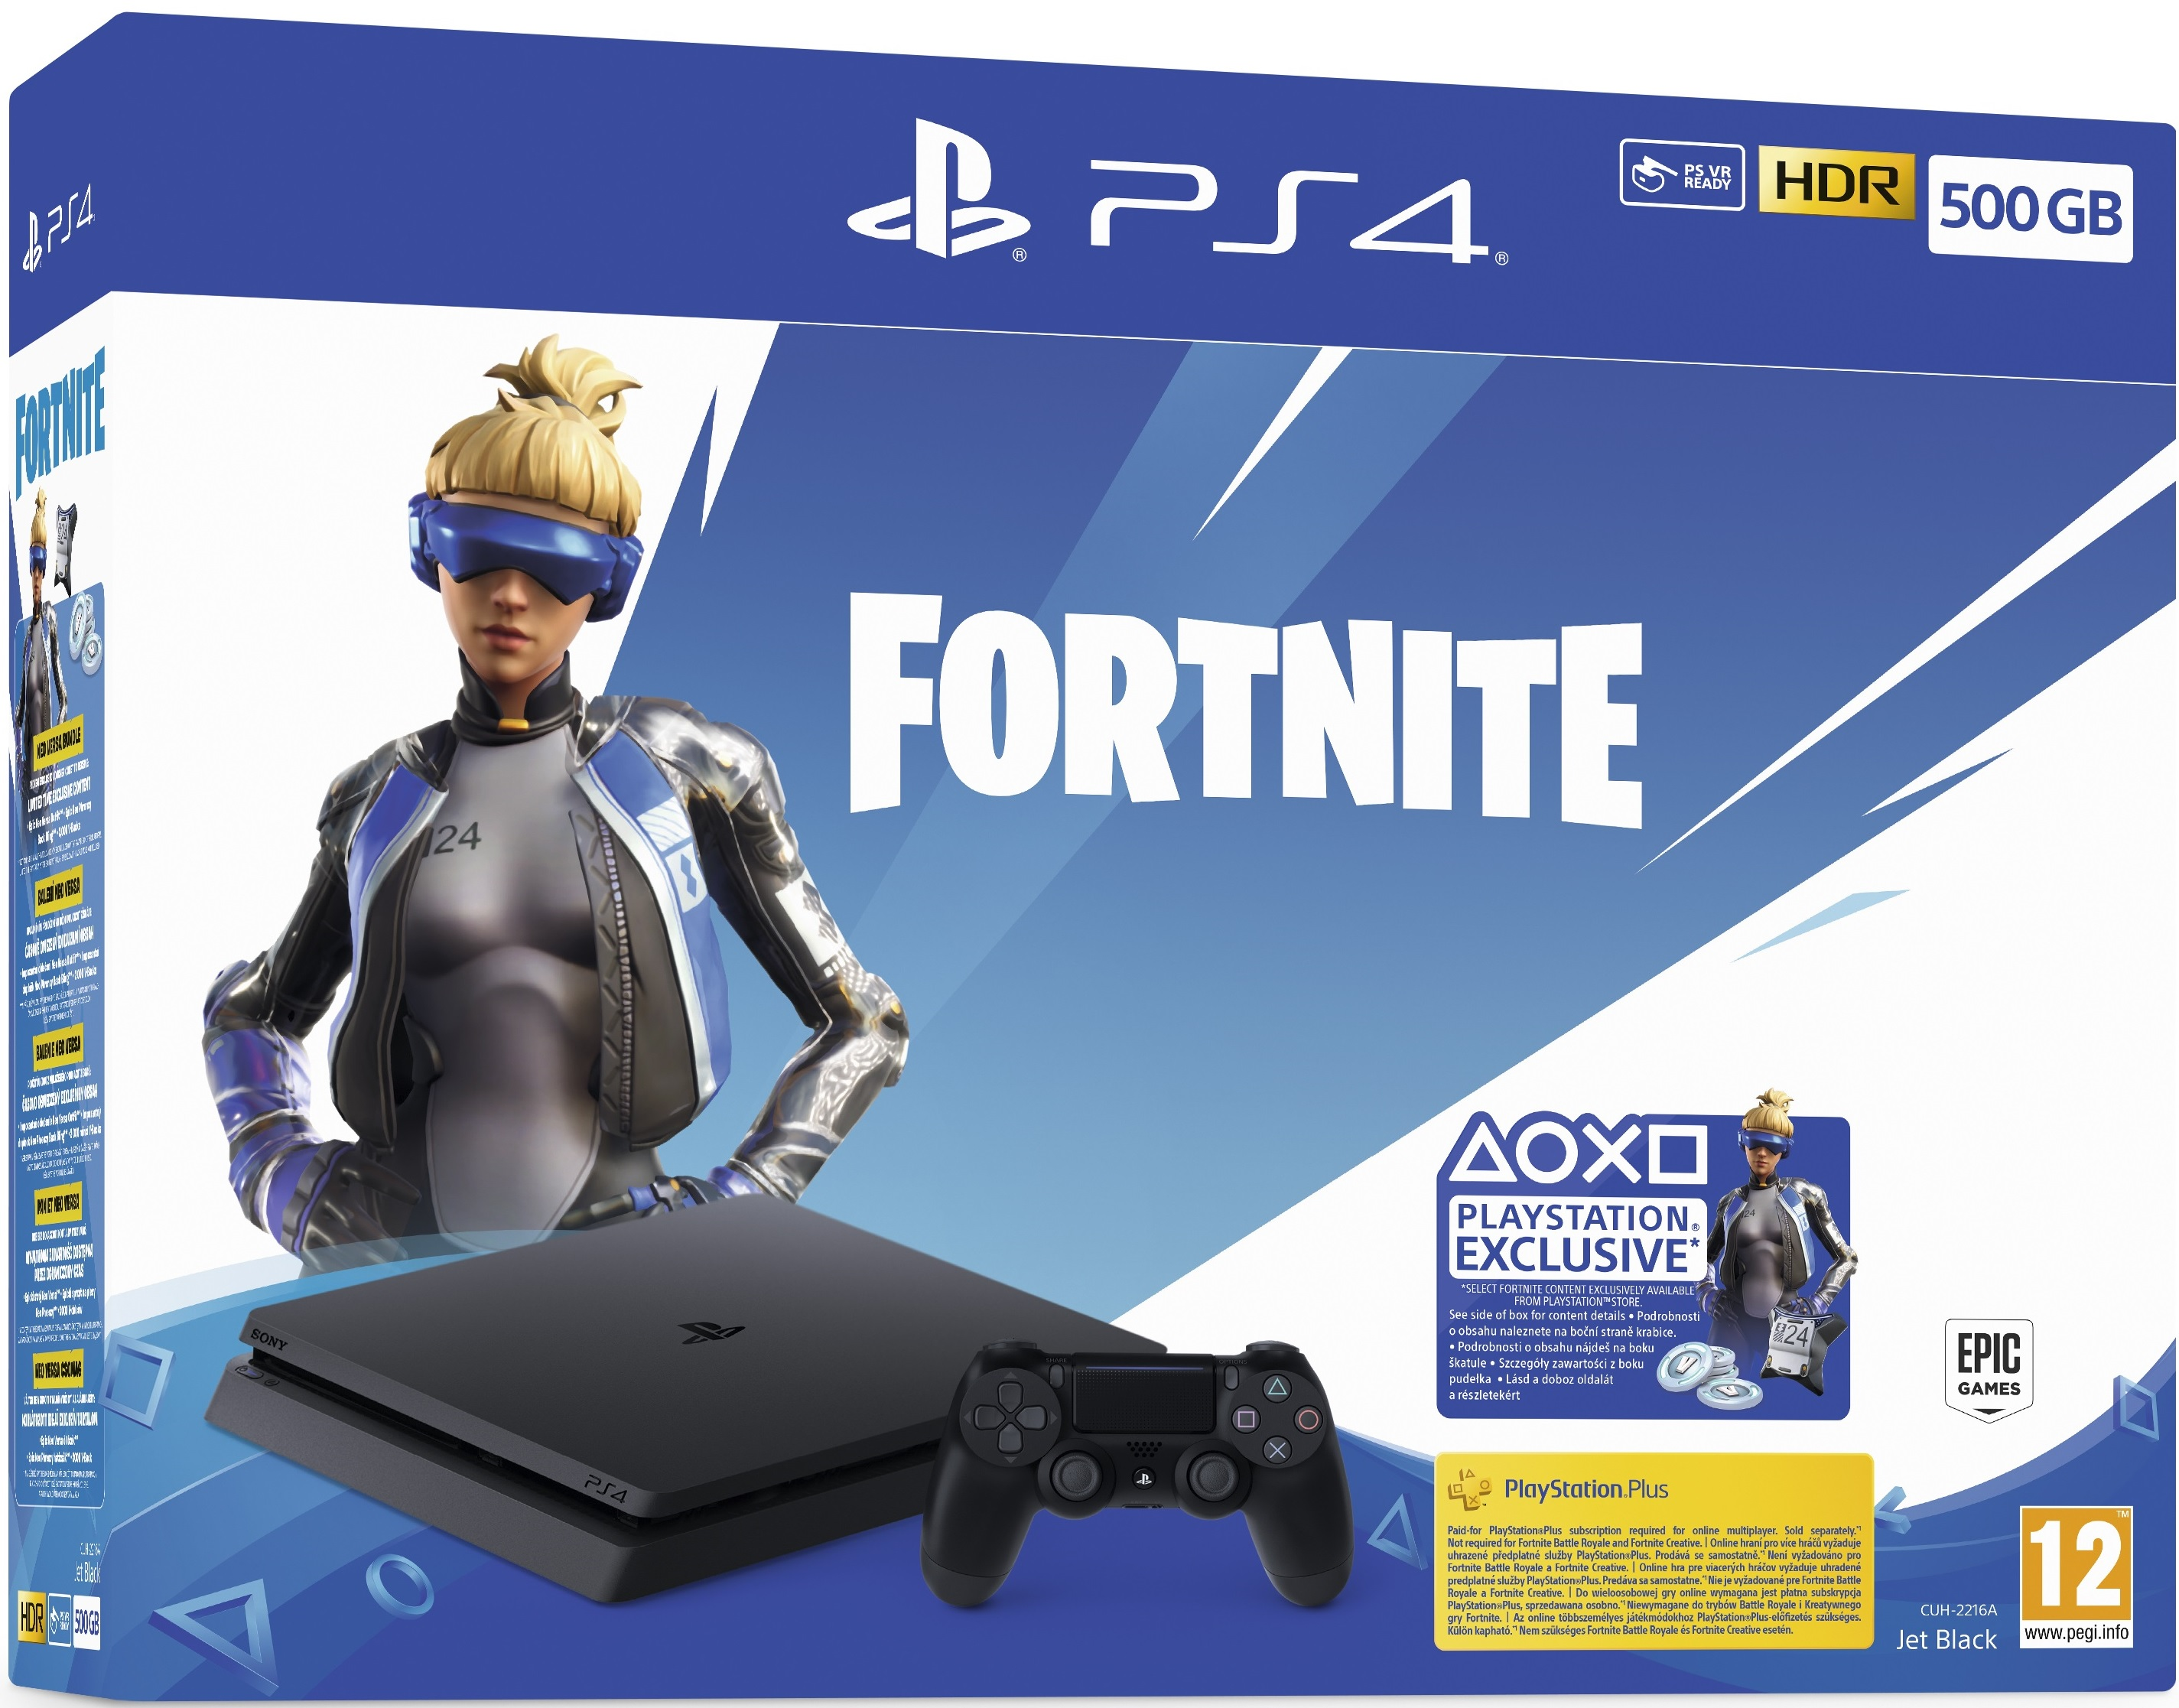 Sony Playstation 4 Slim 500GB Fortnite Neo Versa + Fortnite Deep Freeze bundle